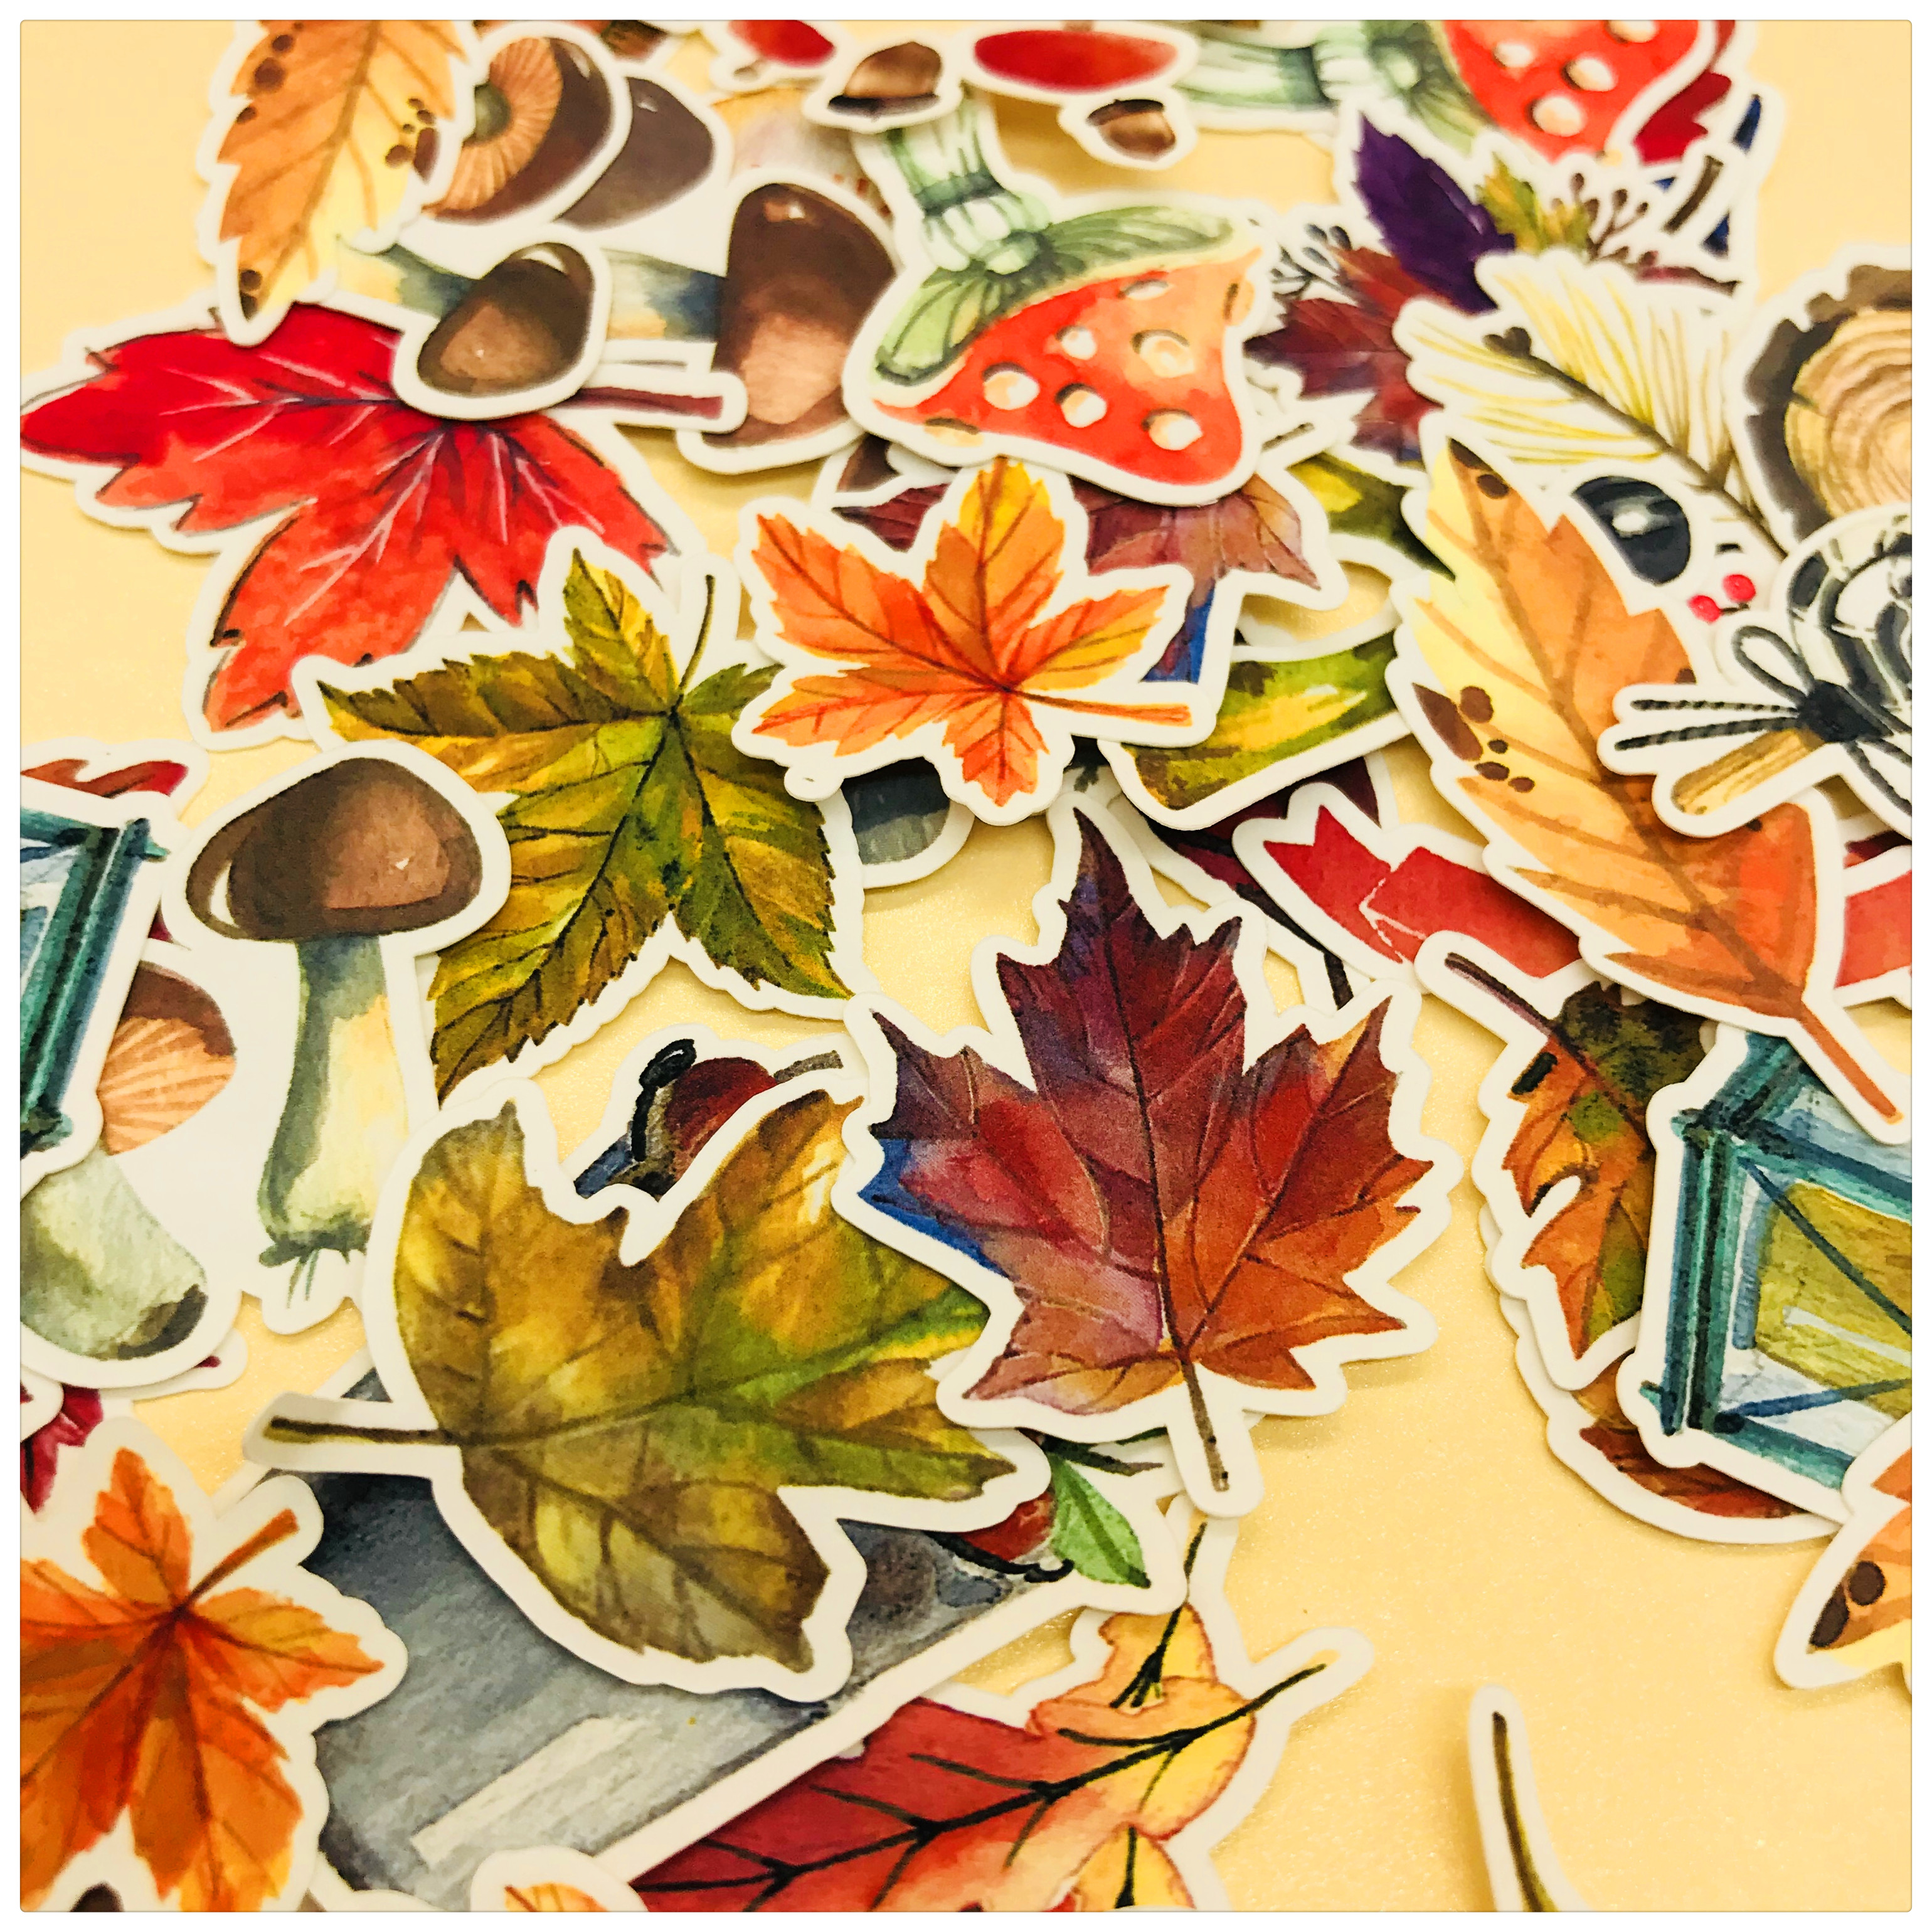 49pcs Autumn Maple Leaves And Mushrooms Decoration Stationery Sticker Diy Diary Scrapbooking Label Sticker Stationery